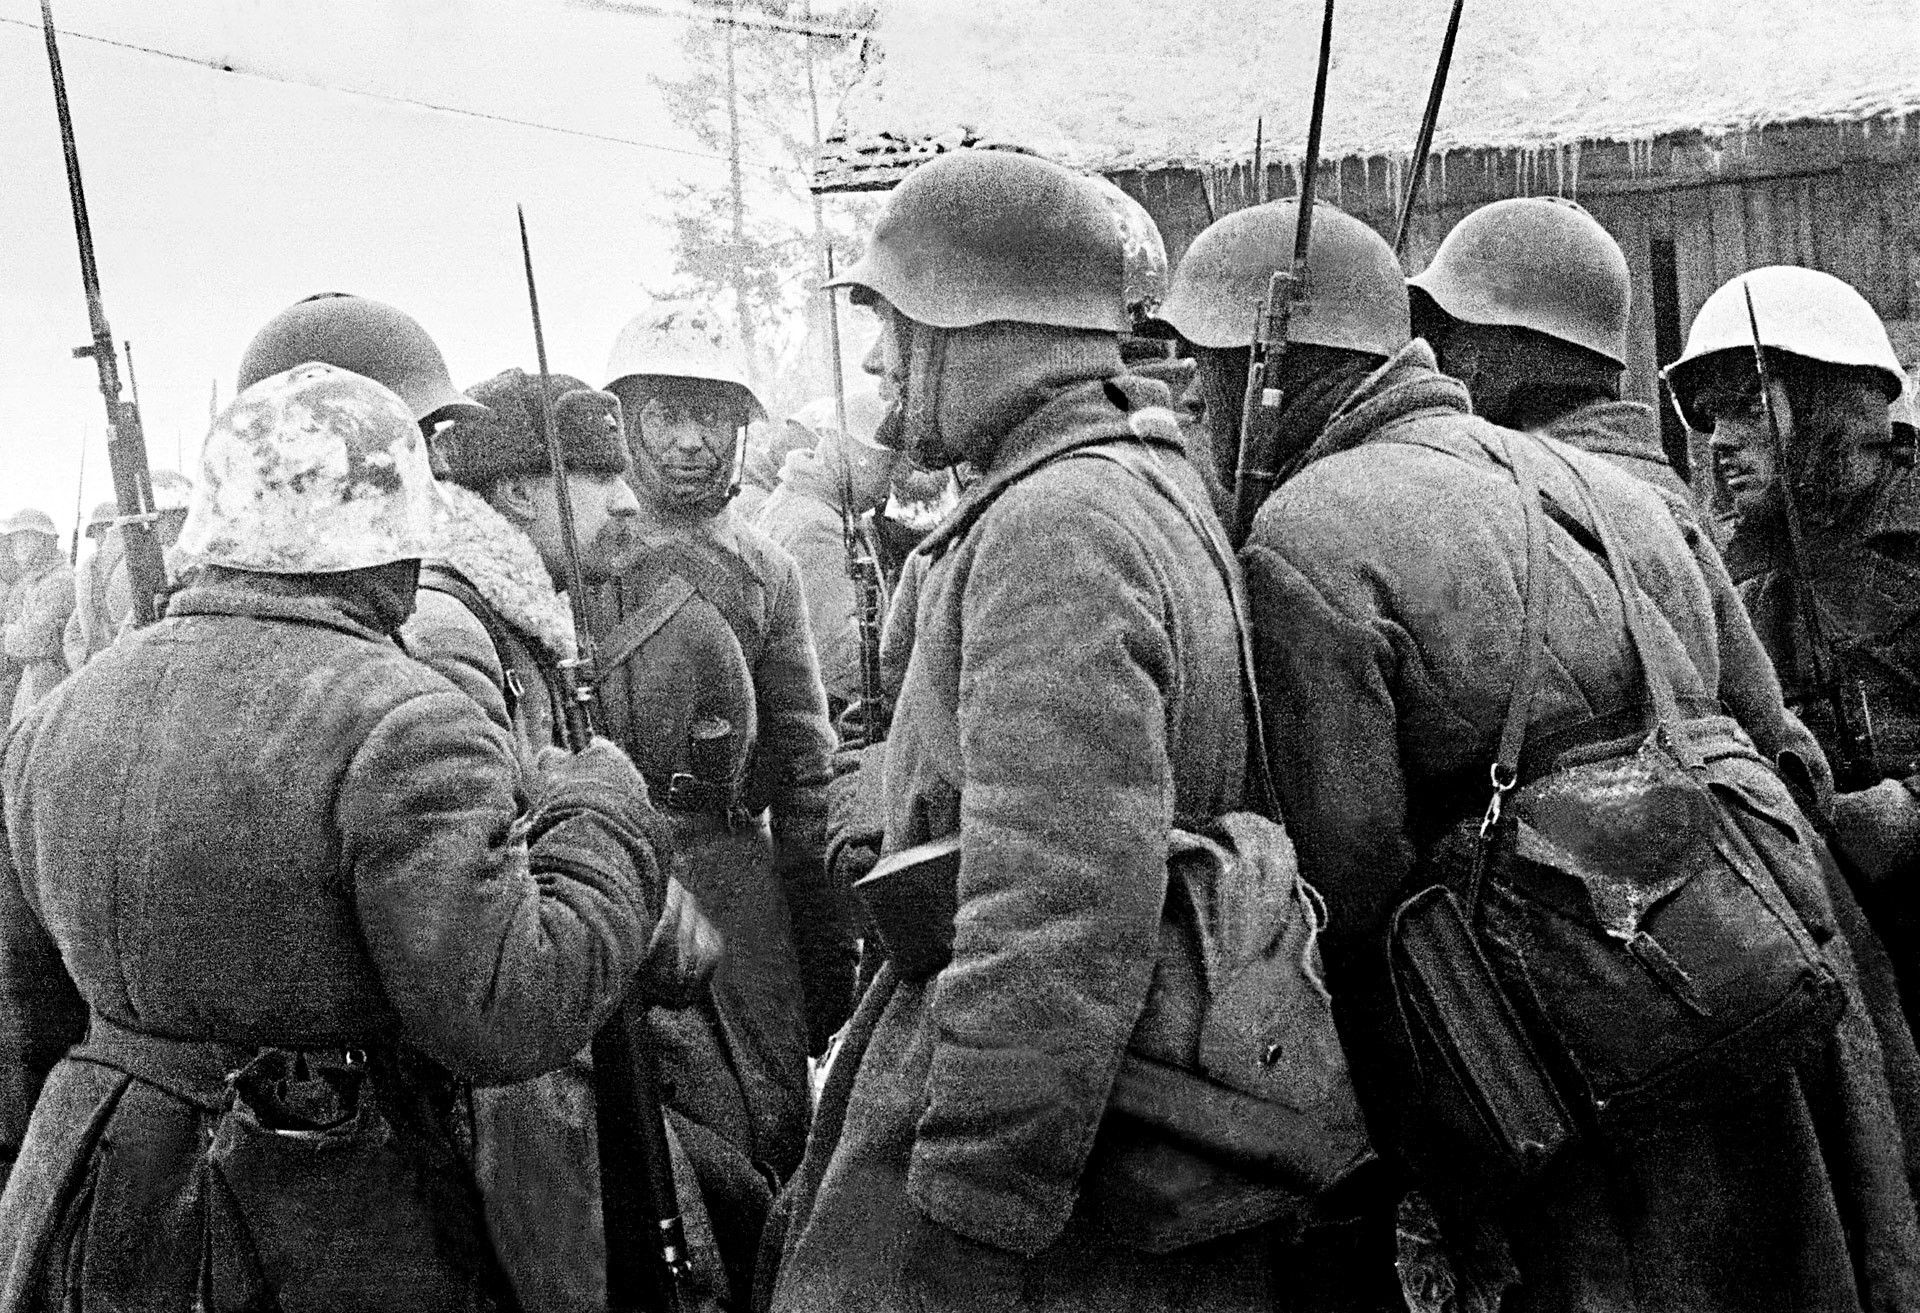 The Karelian Isthmus. The picture shows a battalion commander instructing personnel before a battle. February 1940.